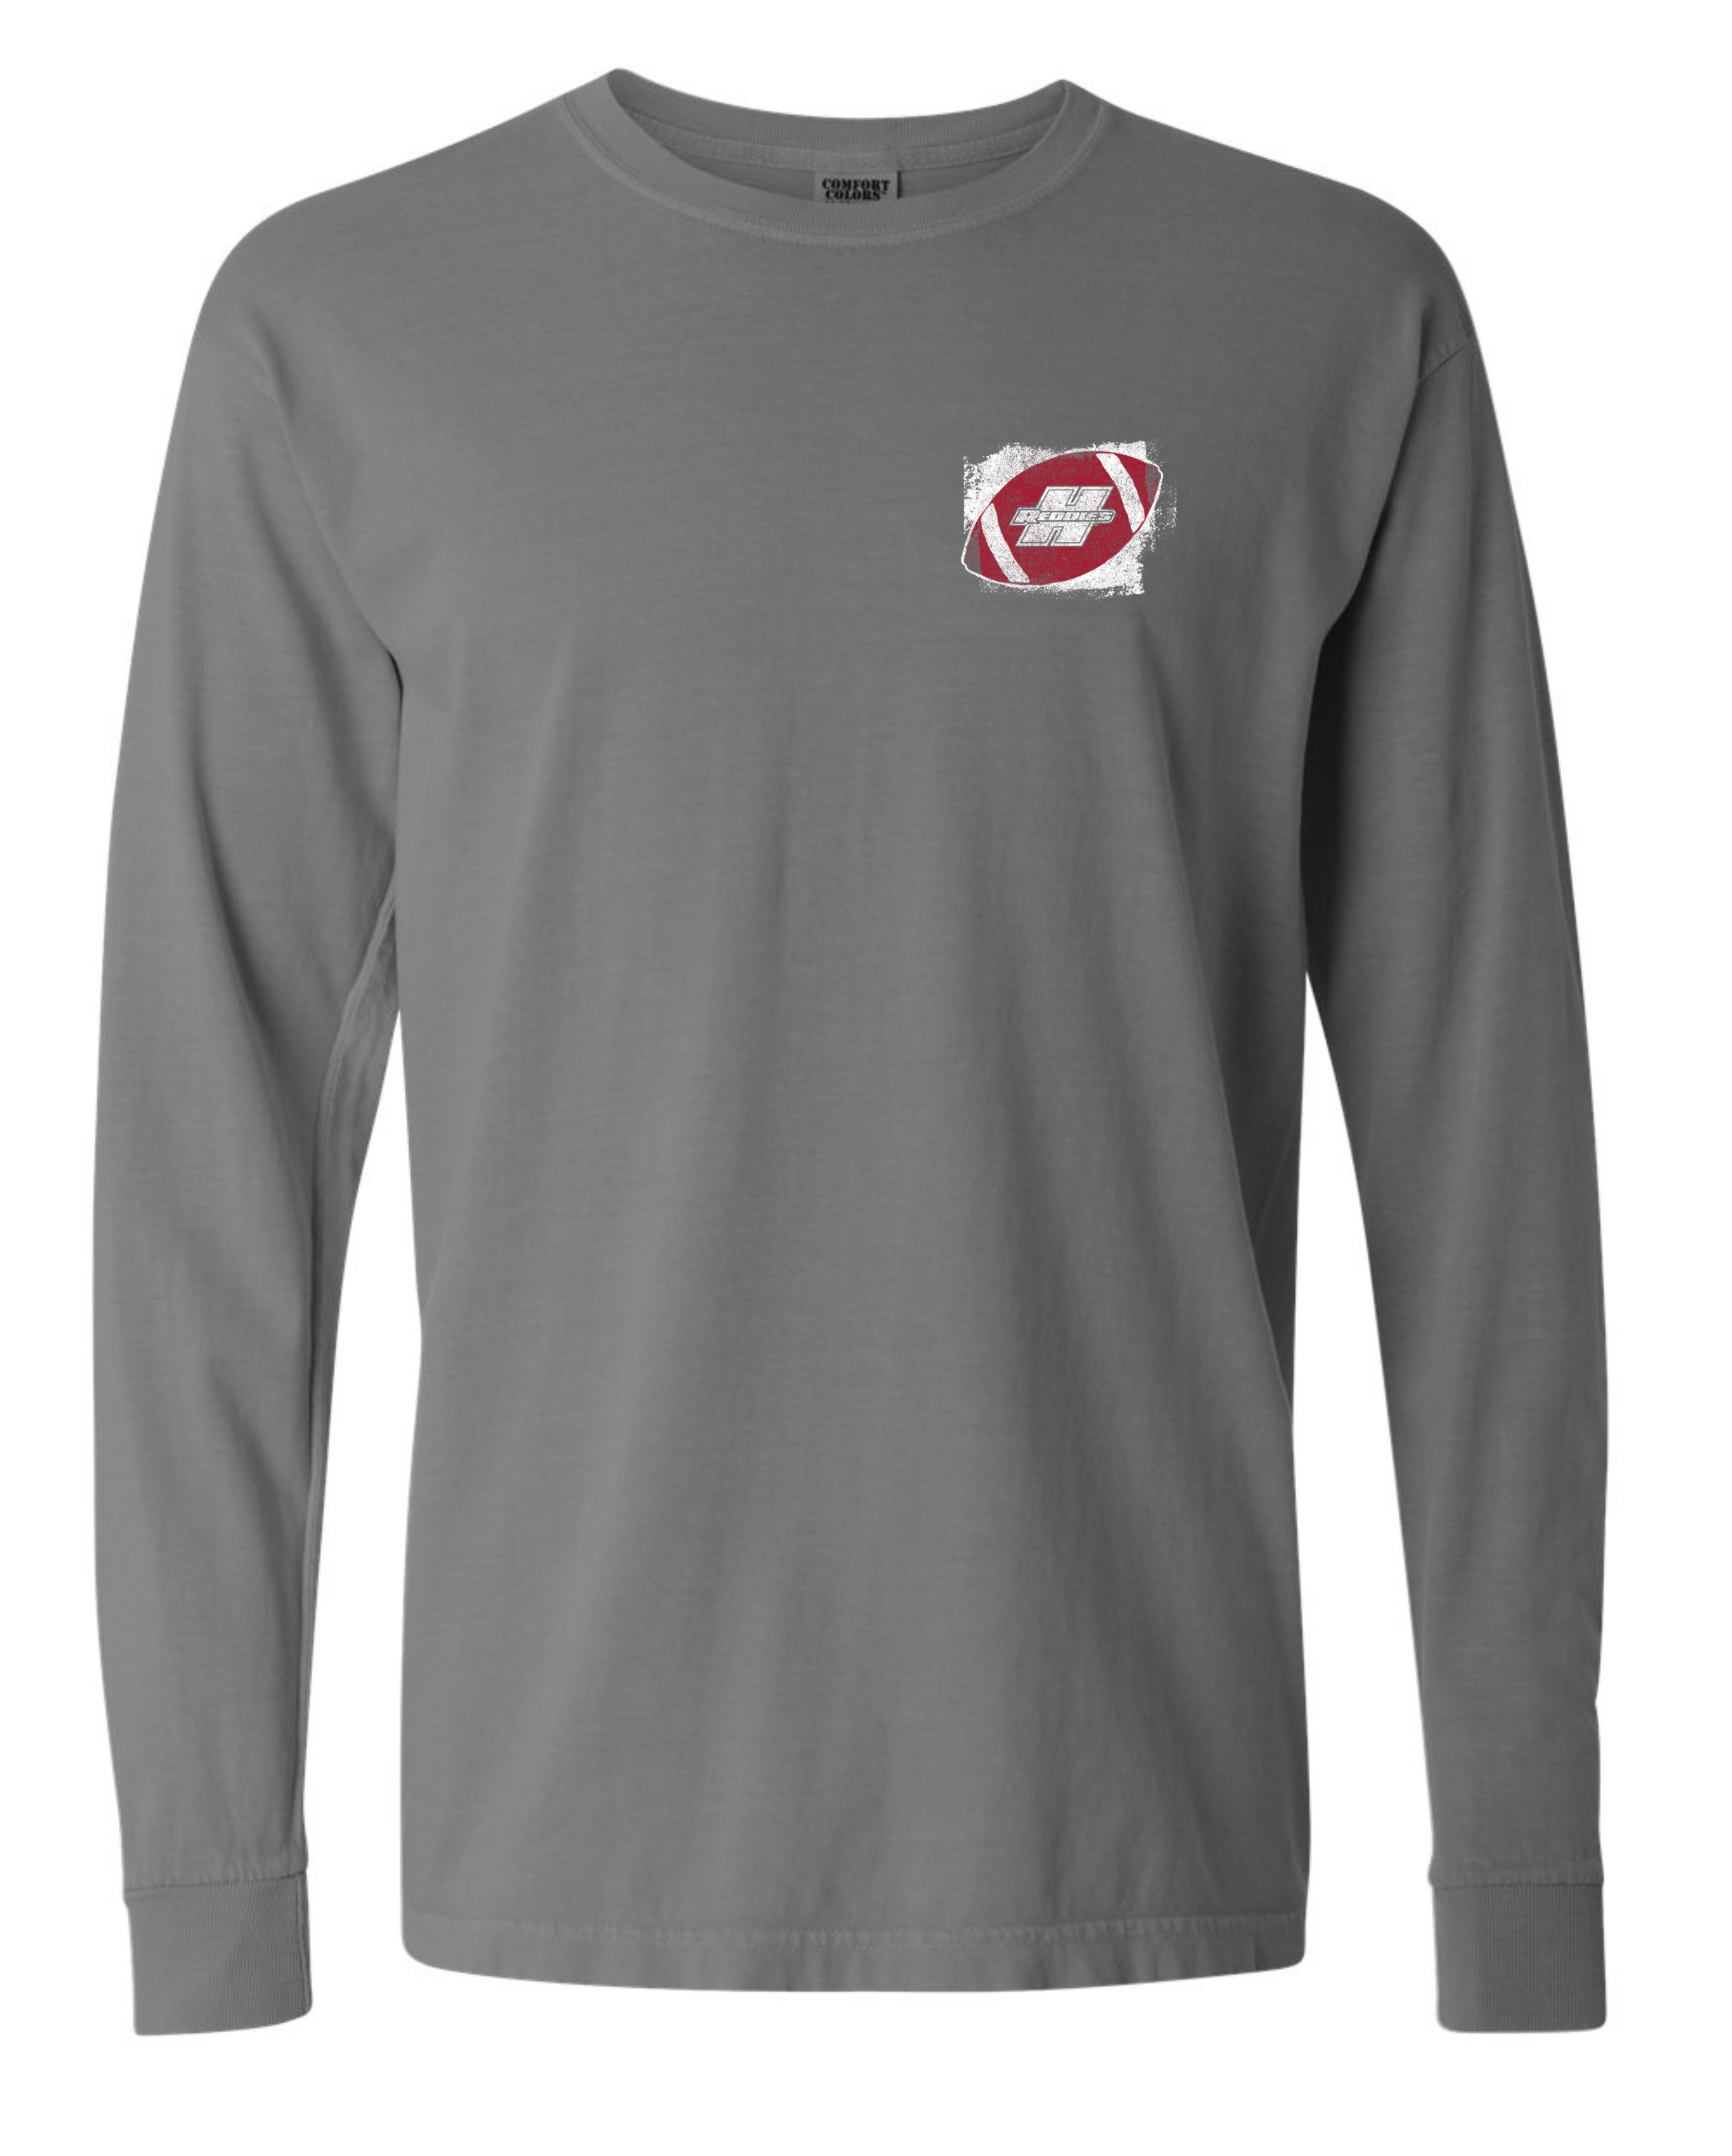 Henderson State Reddies Football End Zone Long Sleeve T-Shirt